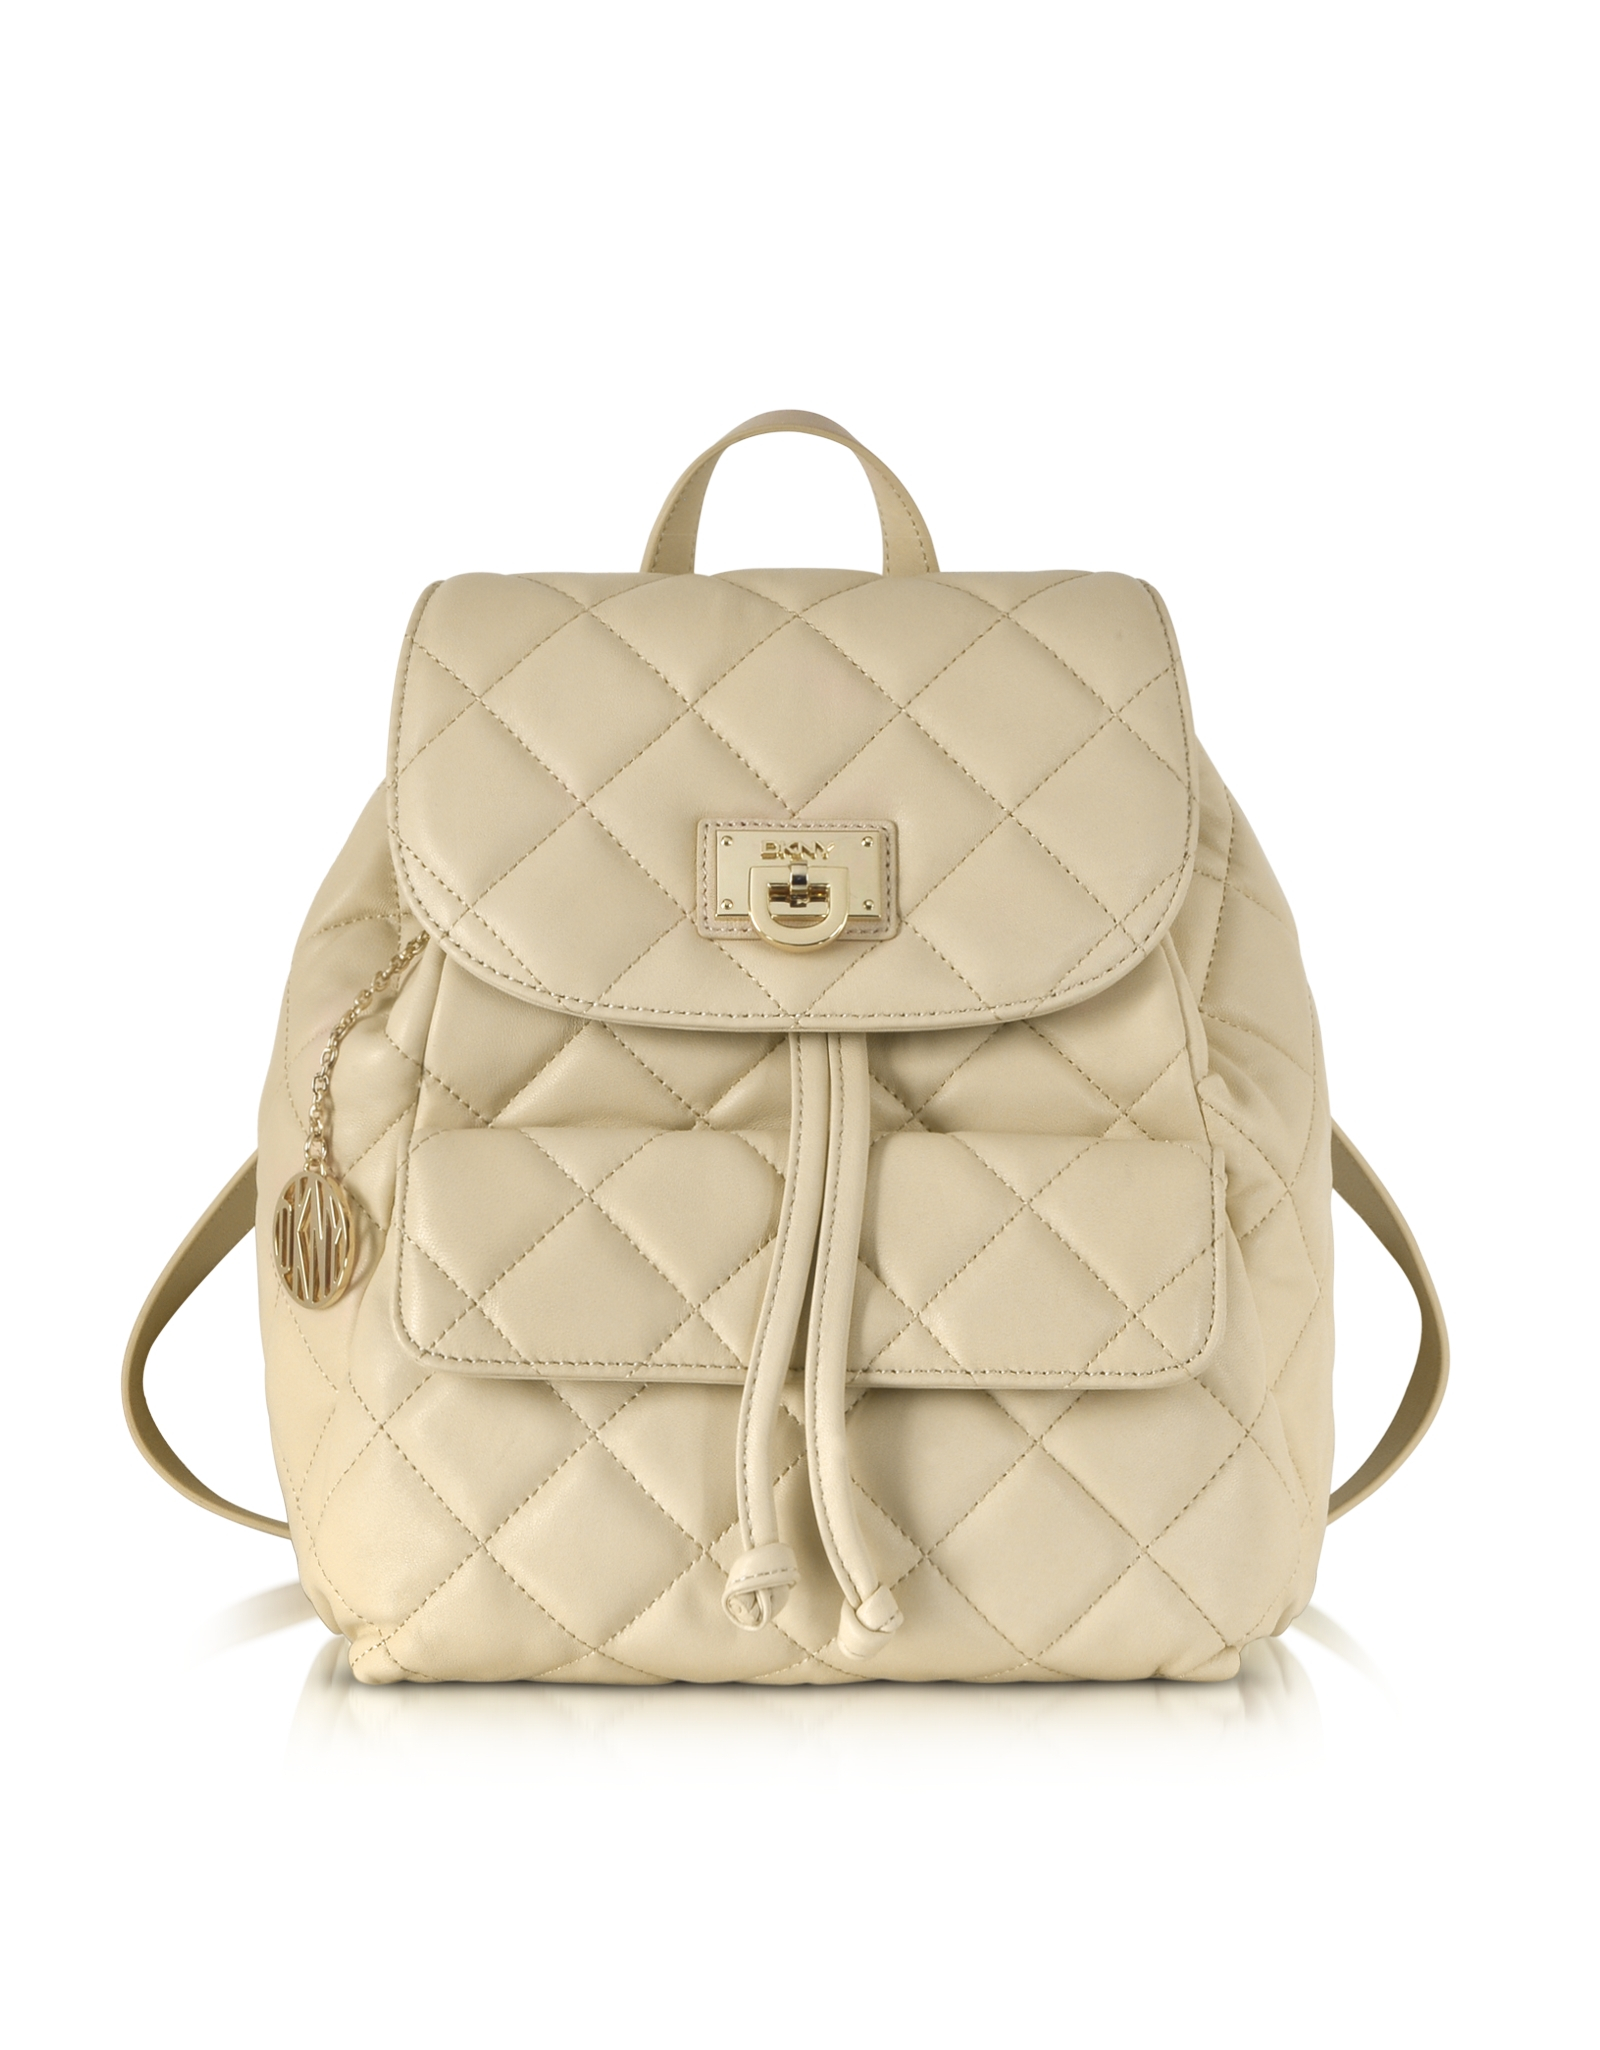 Dkny Gansevoort Quilted Nappa Leather Backpack in Natural | Lyst : dkny quilted rucksack - Adamdwight.com